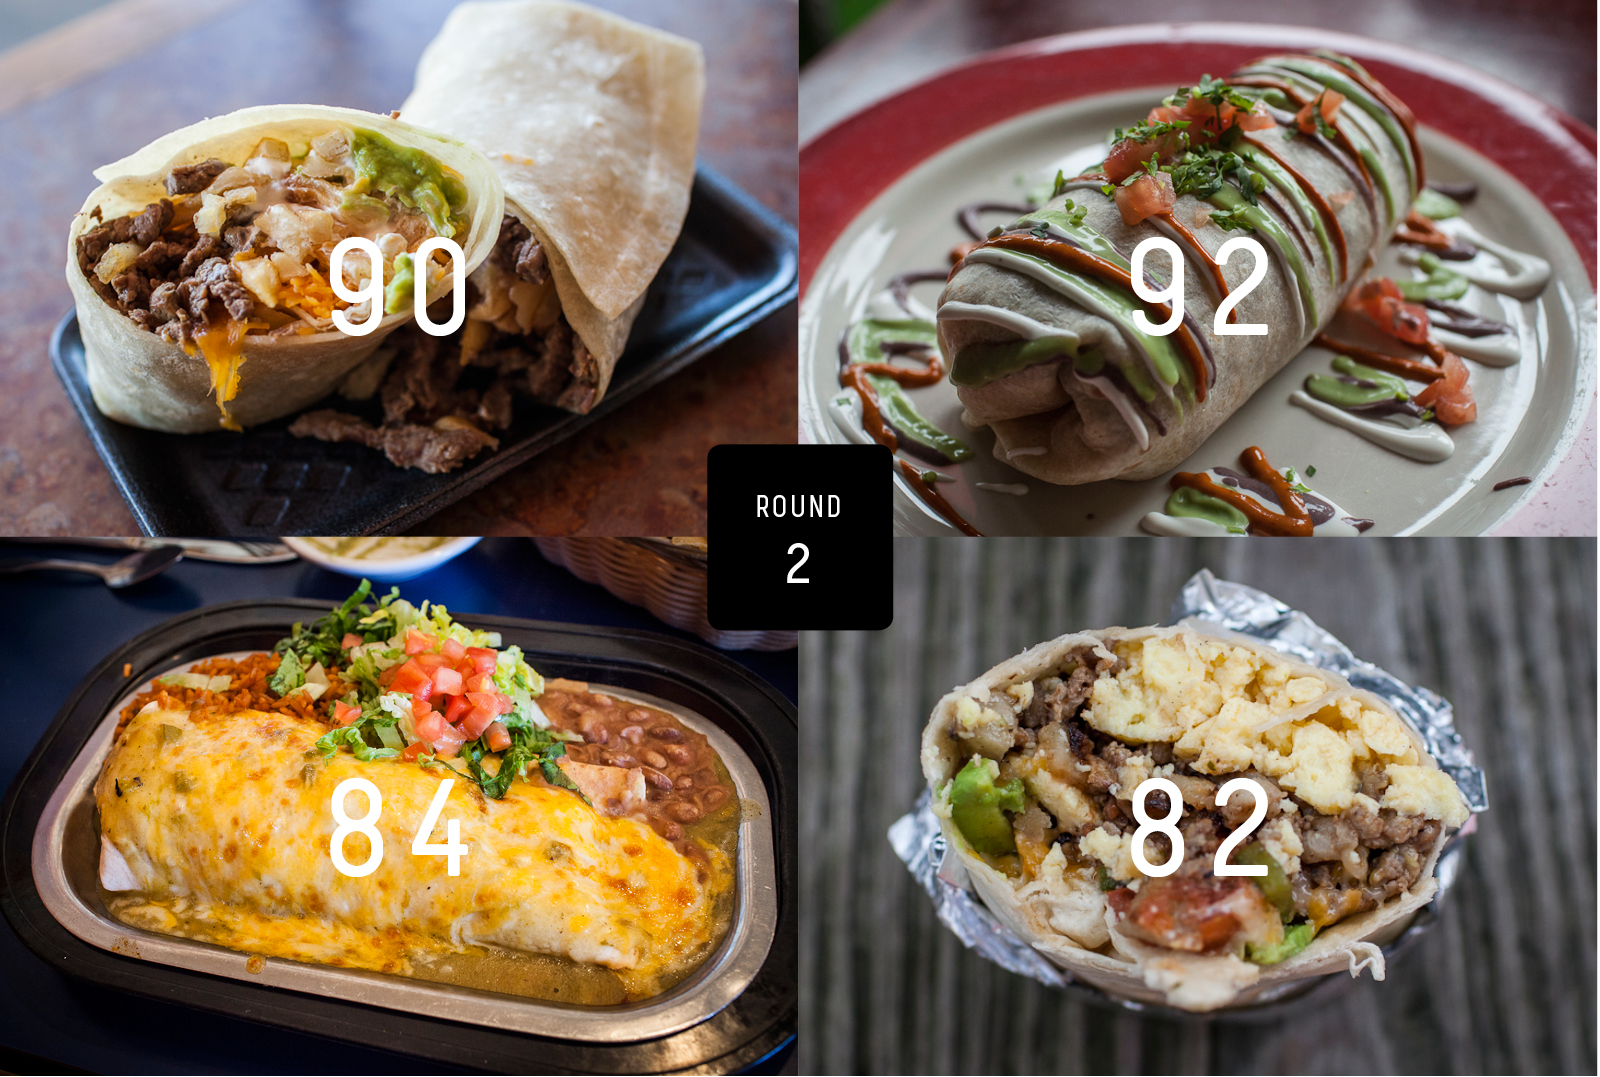 Clockwise from top left: Lolita's Taco Shop, Taqueria Tlaxcalli, Breakfast Burritos Anonymous, The Pantry.